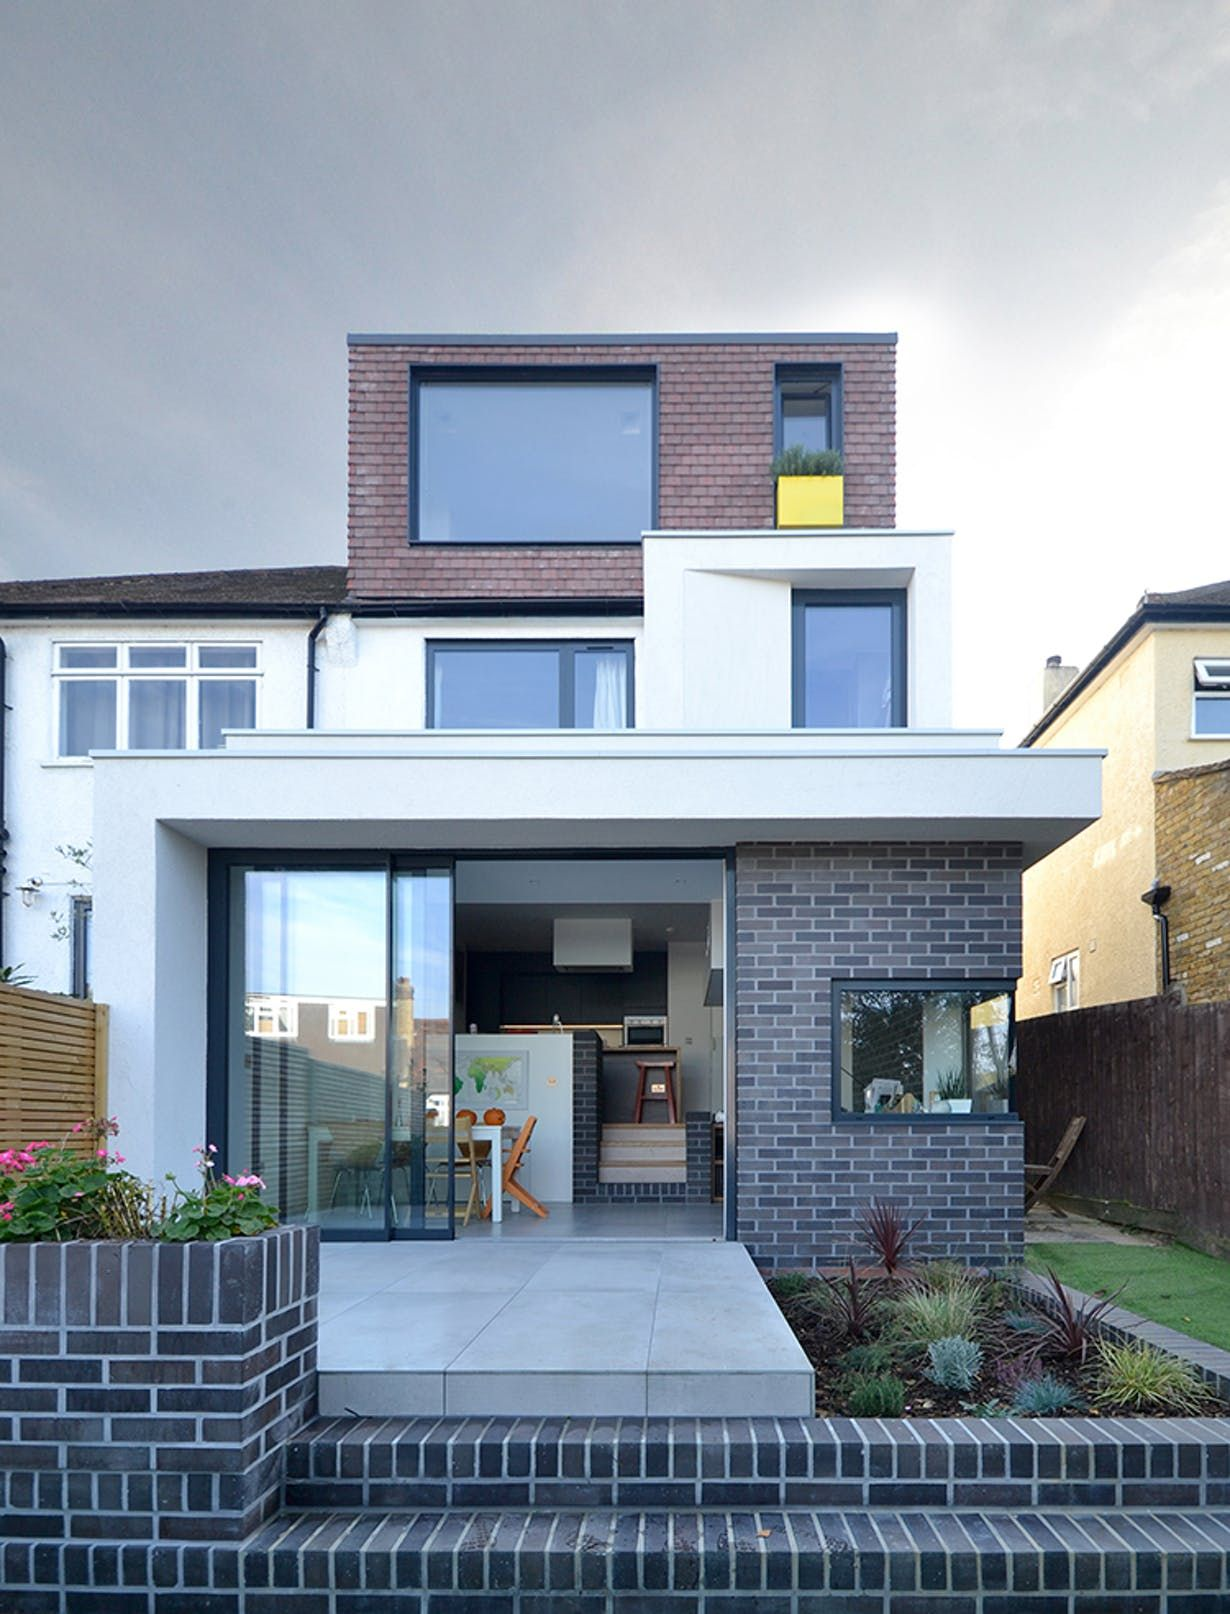 Broxholm Road Selencky Parsons Archinect House Extension Design House Extension Plans House Designs Ireland